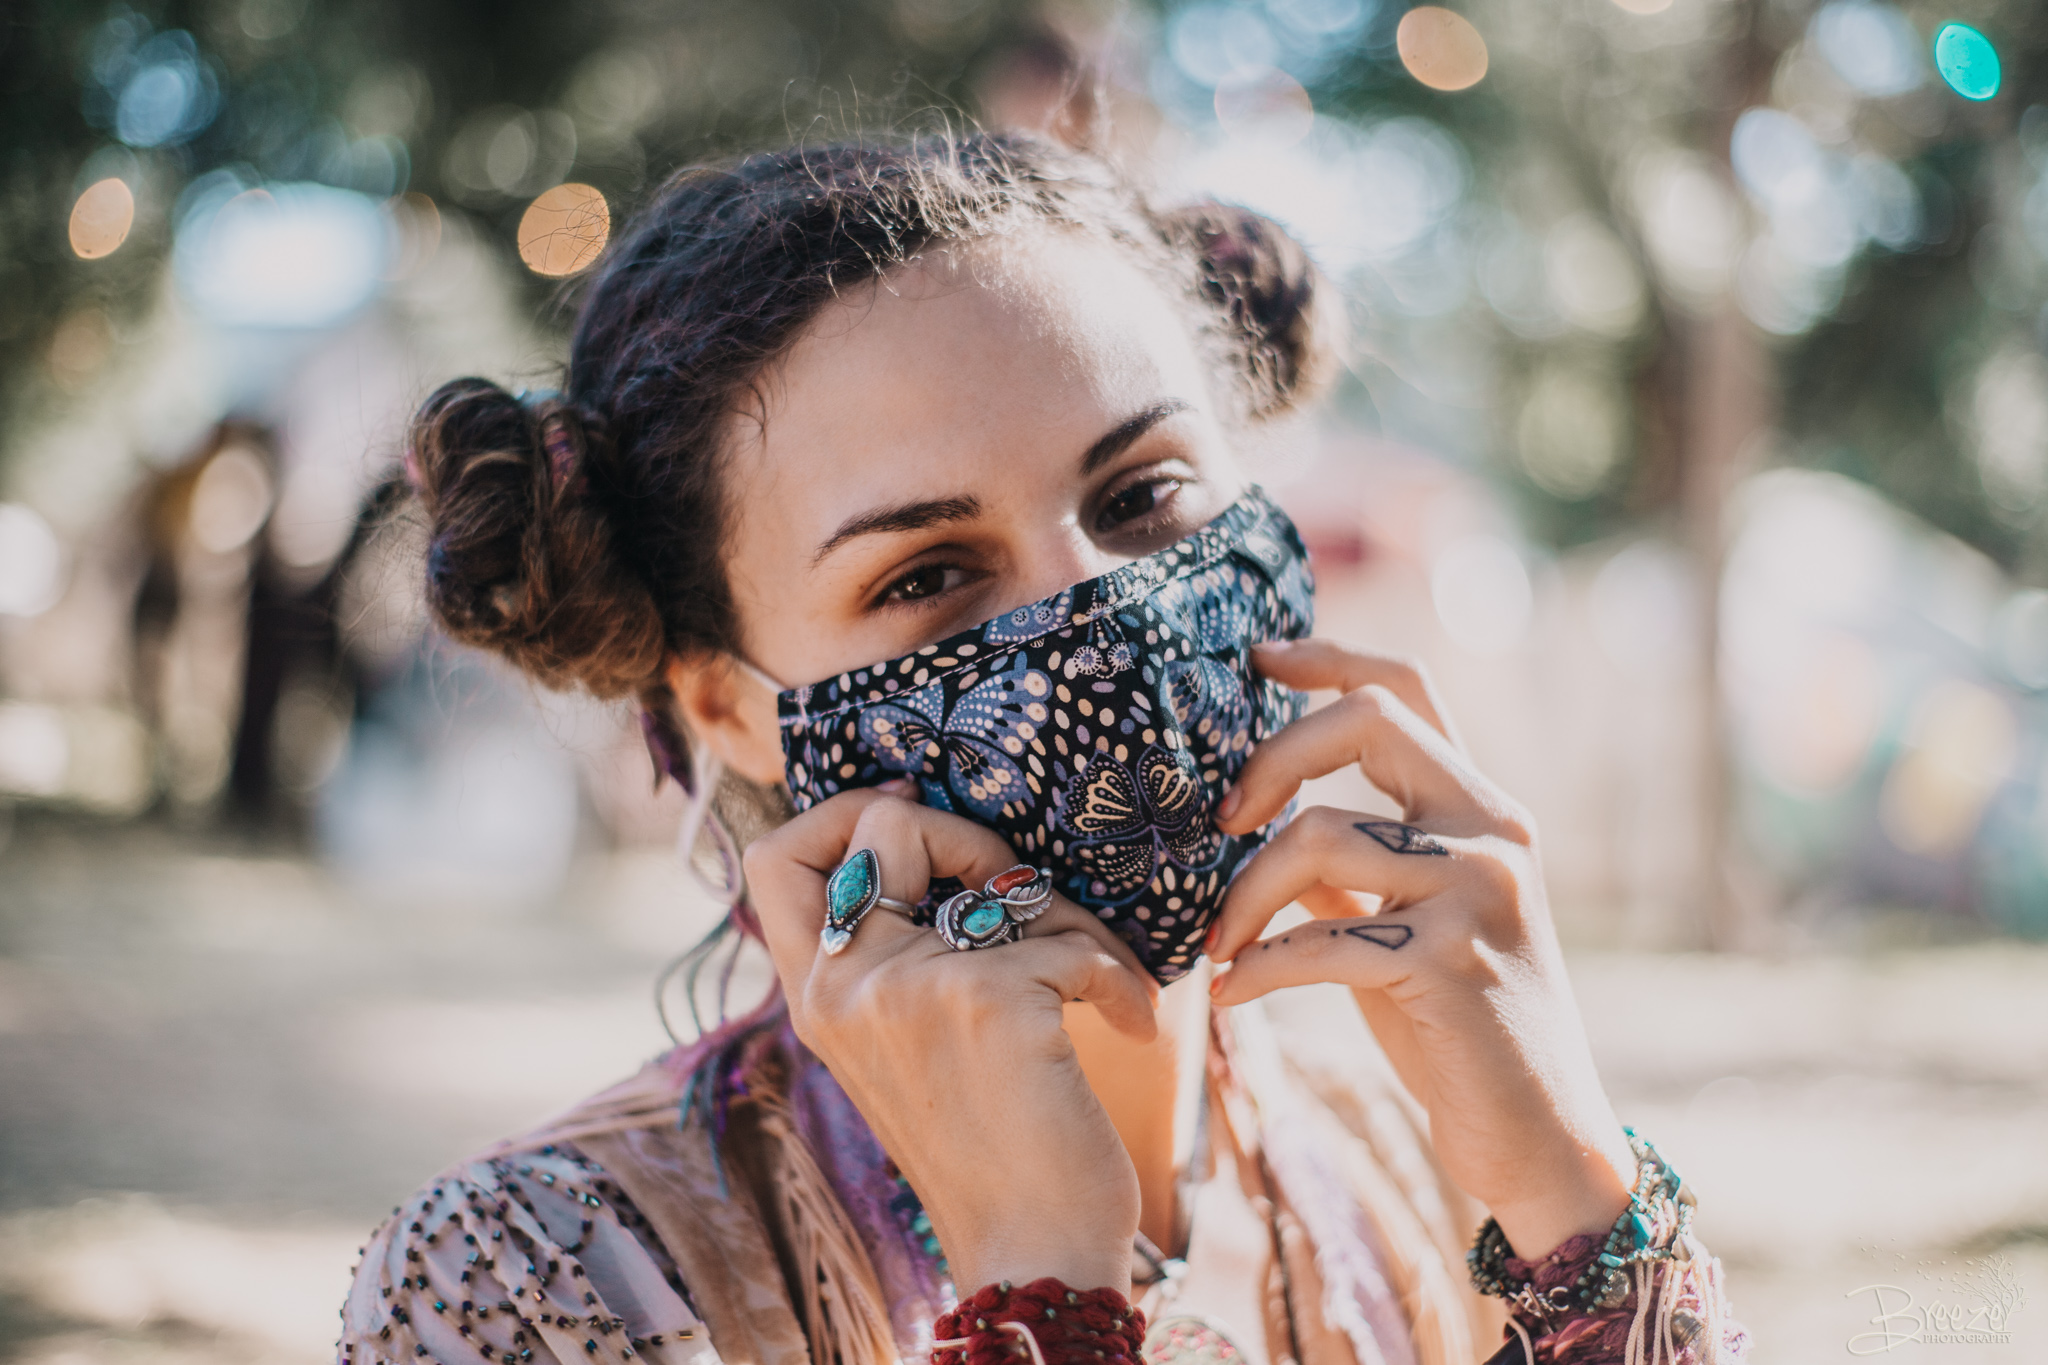 Lucidity.Festival.2019.Brie'Ana Breeze Photography and Media-7350.jpg